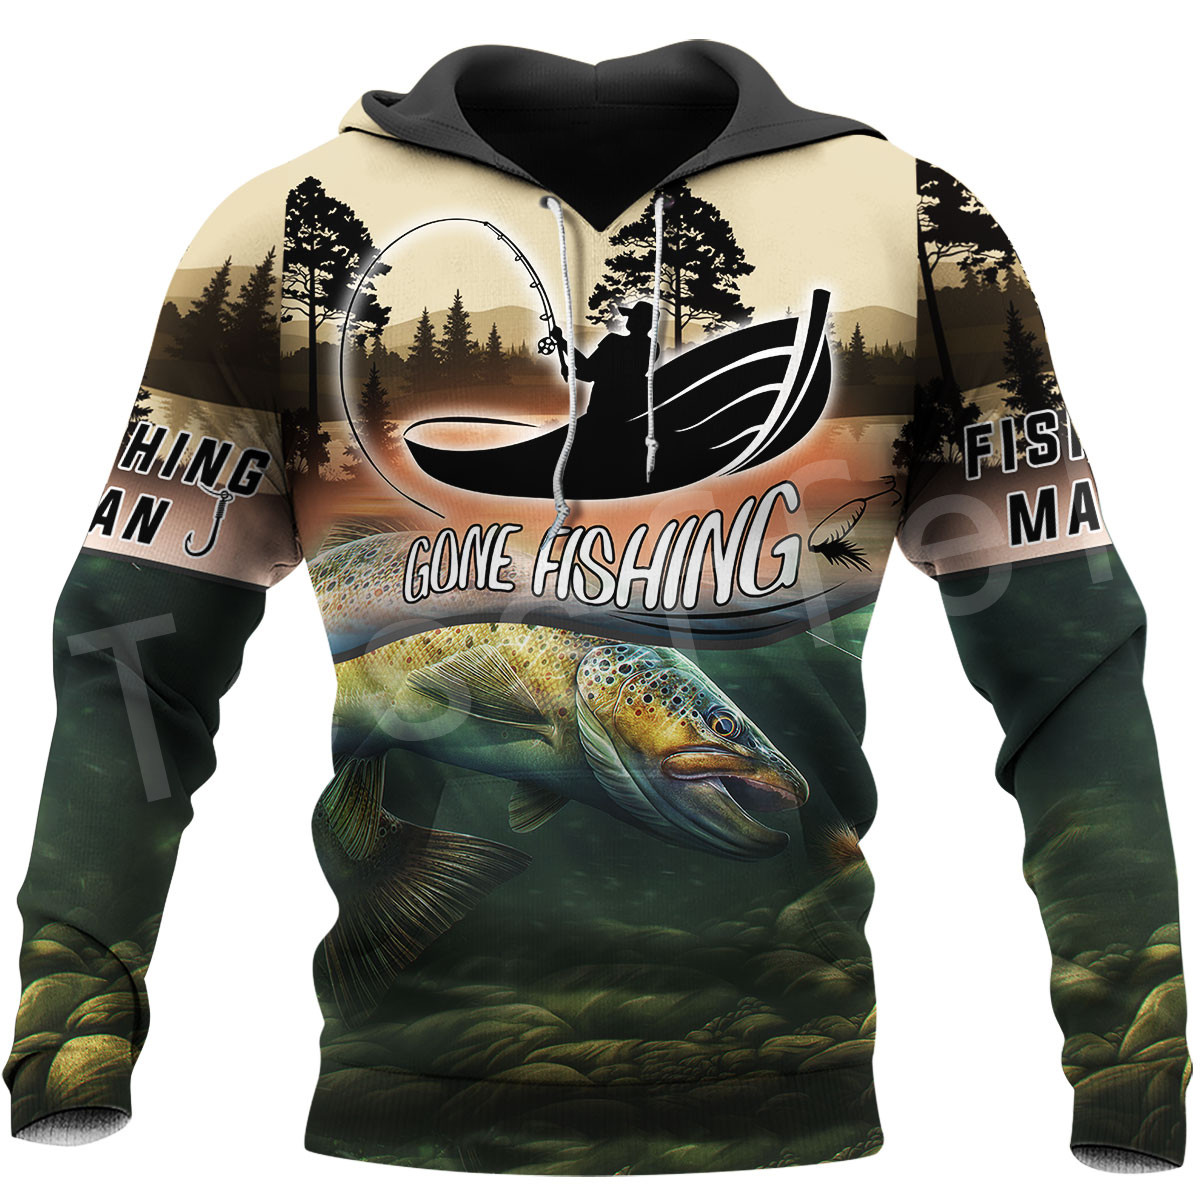 Tessffel NewFashion Animal Marlin Hunting Fishing Harajuku Casual Pullover 3DPrint Zipper/Hoodie/Sweatshirt/Jacket/Men/Women S13